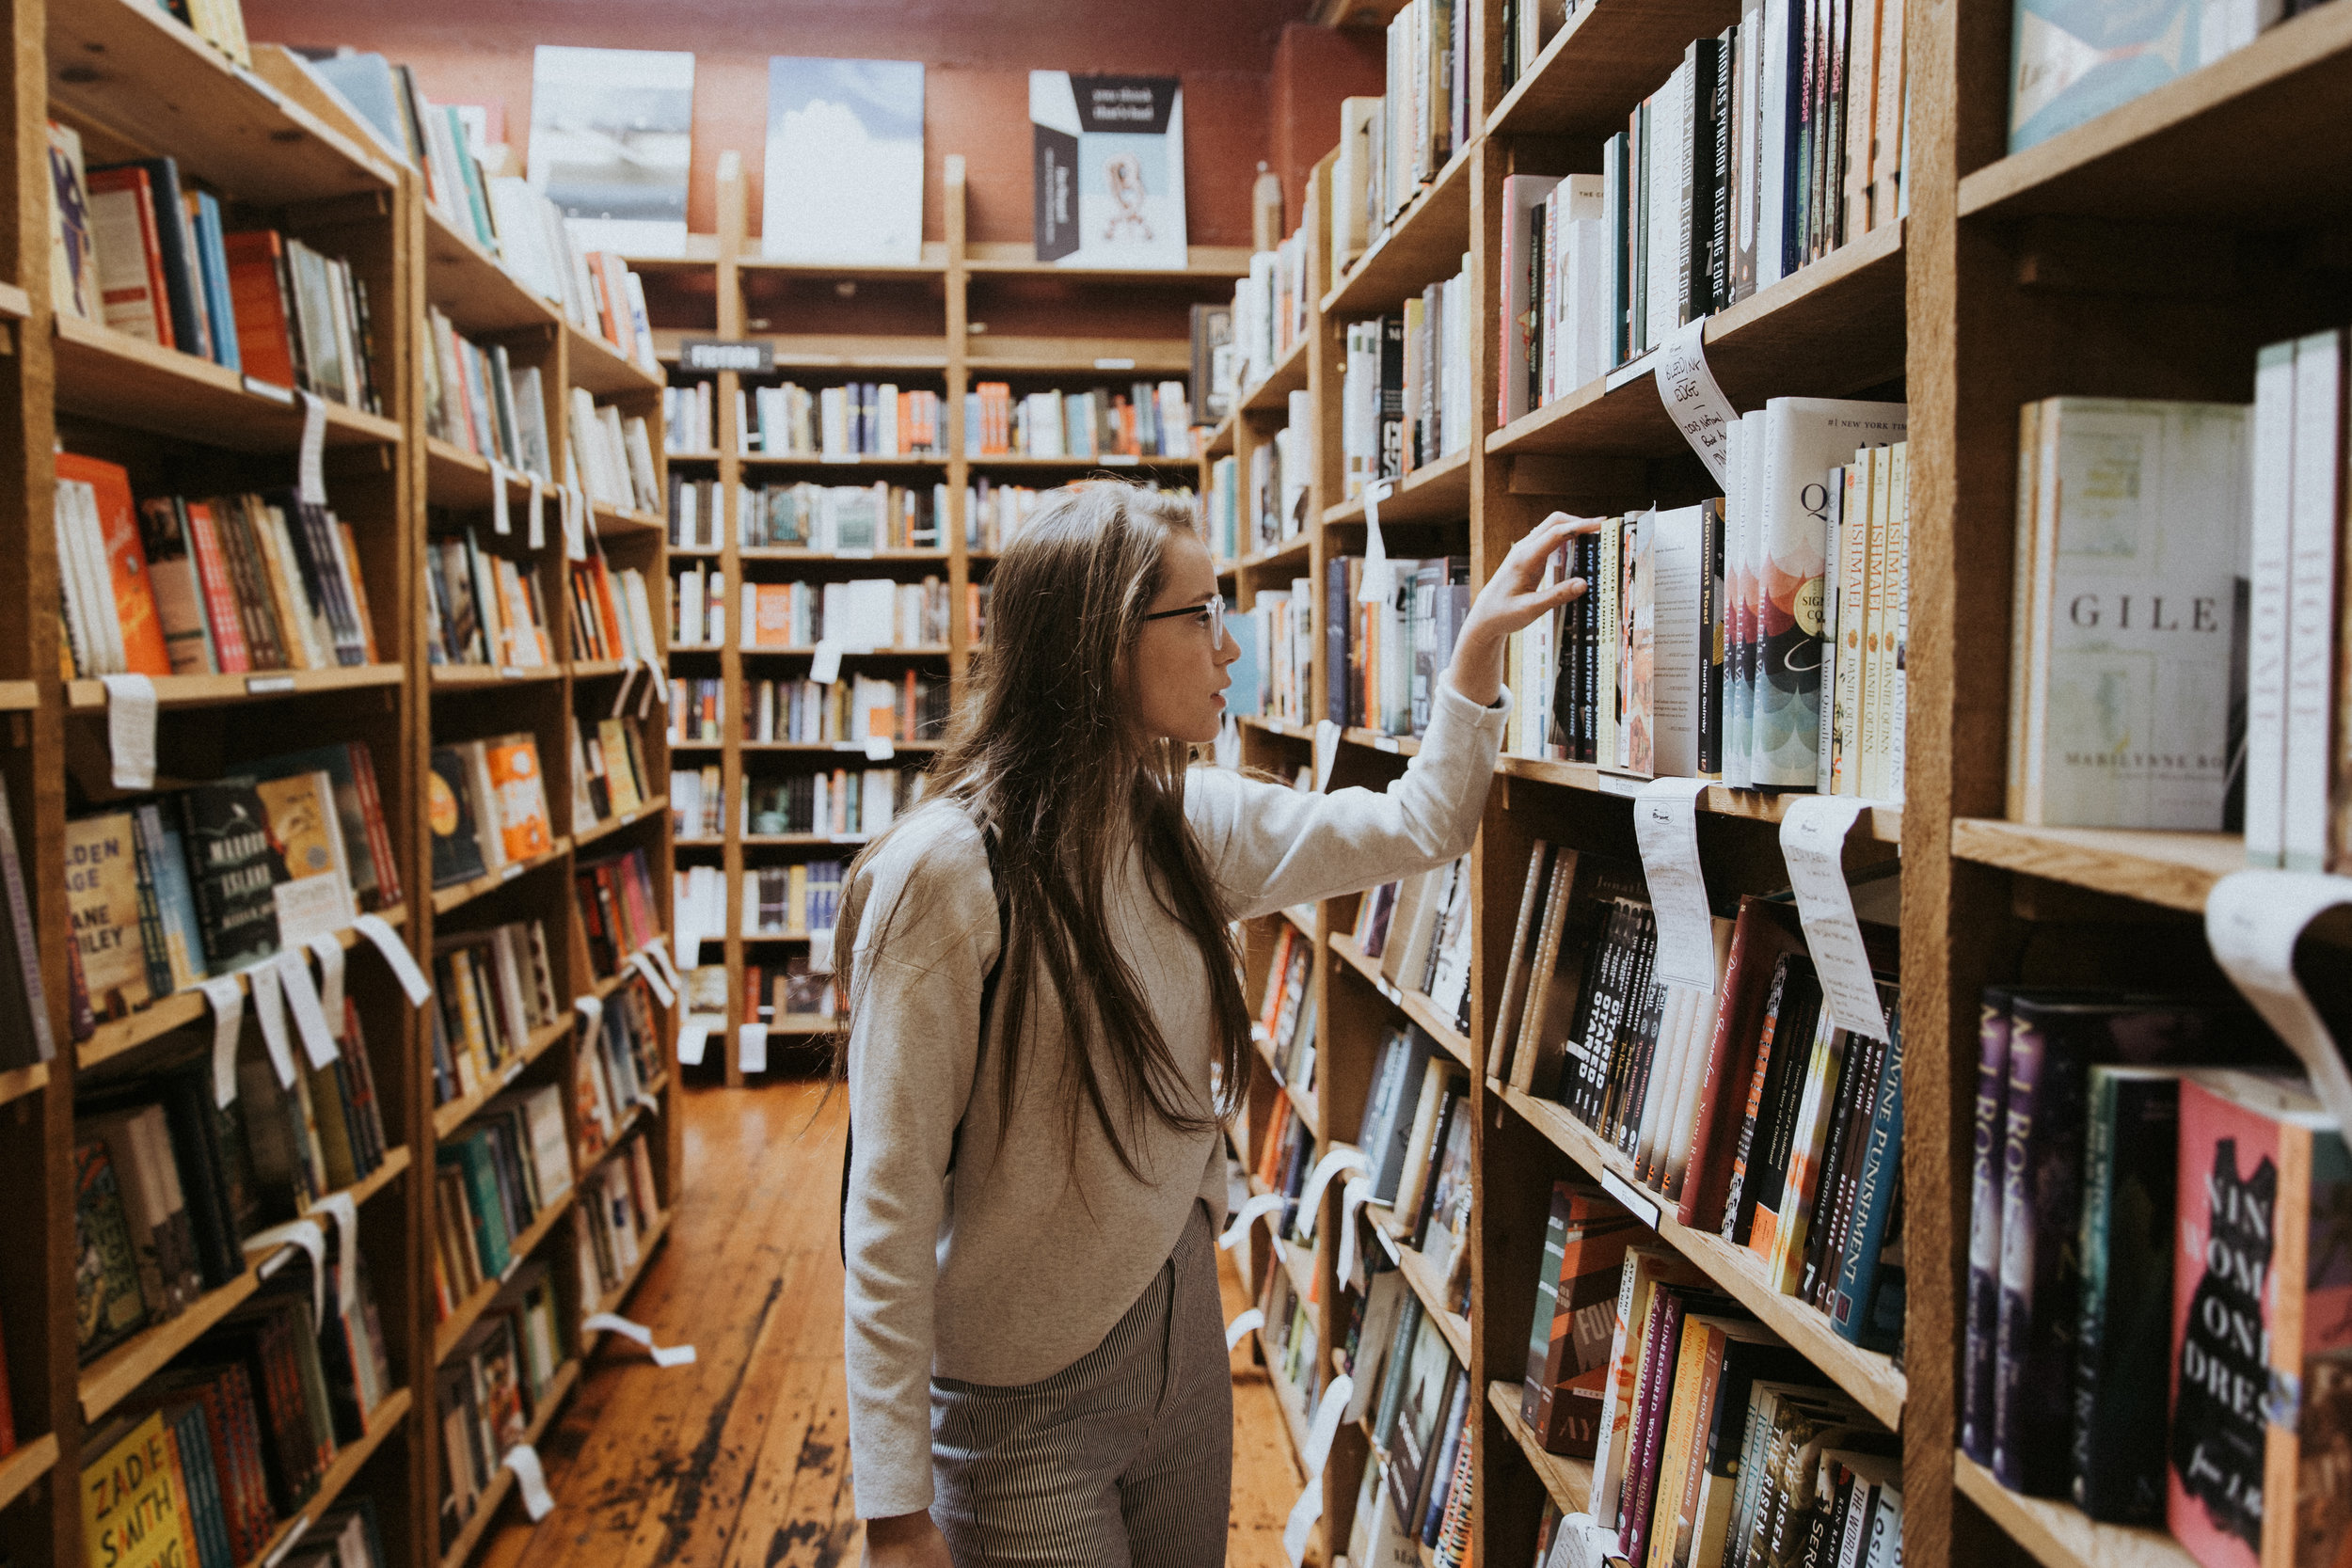 How do you find a book in a library?